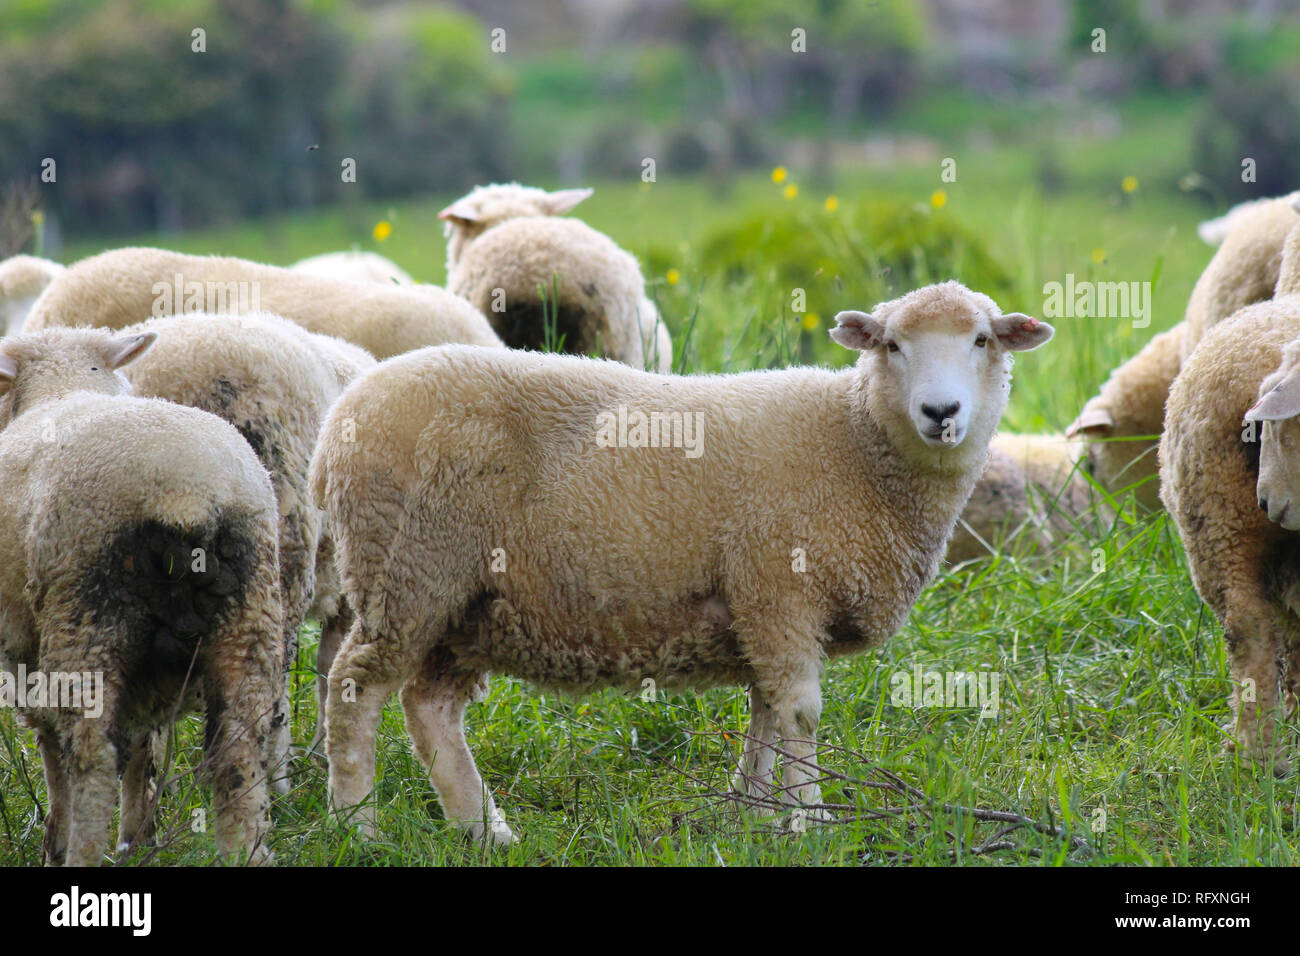 Sheep, The Catlins, South Island, New Zealand. Wool has historically been one of New Zealand's major exports - Stock Image